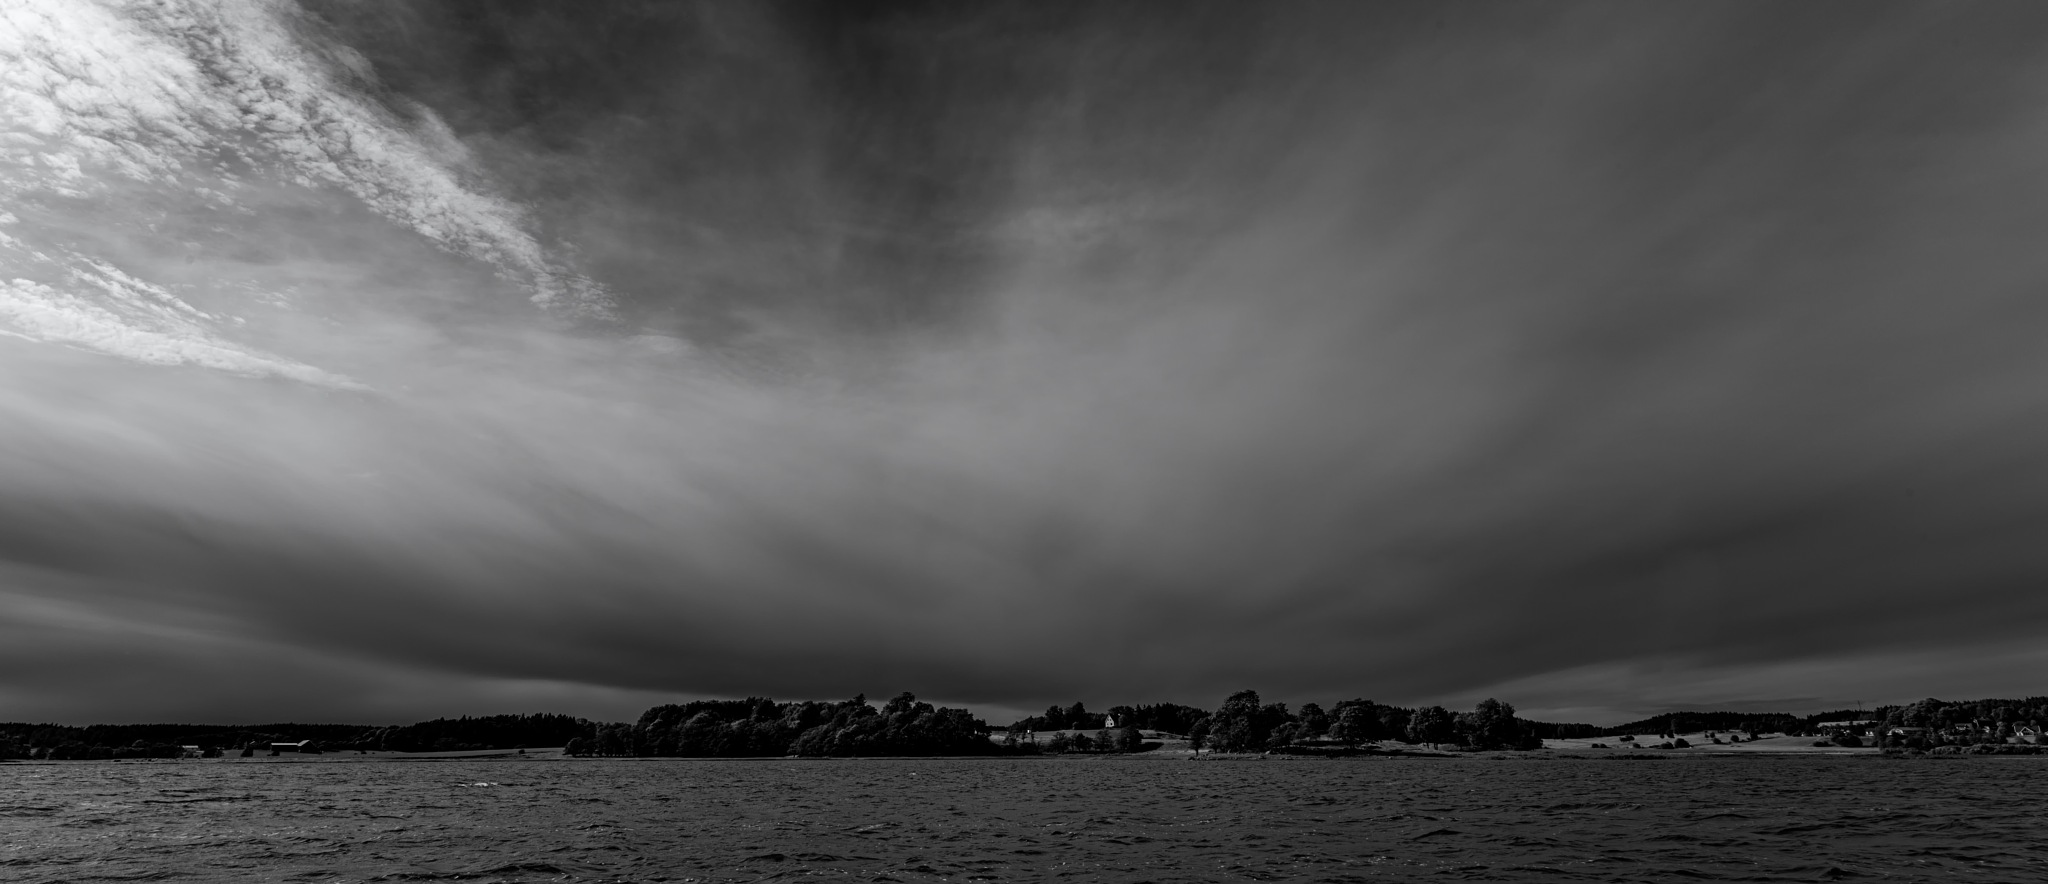 Great Soft Clouds in the Sky by Mikael Jakobsson